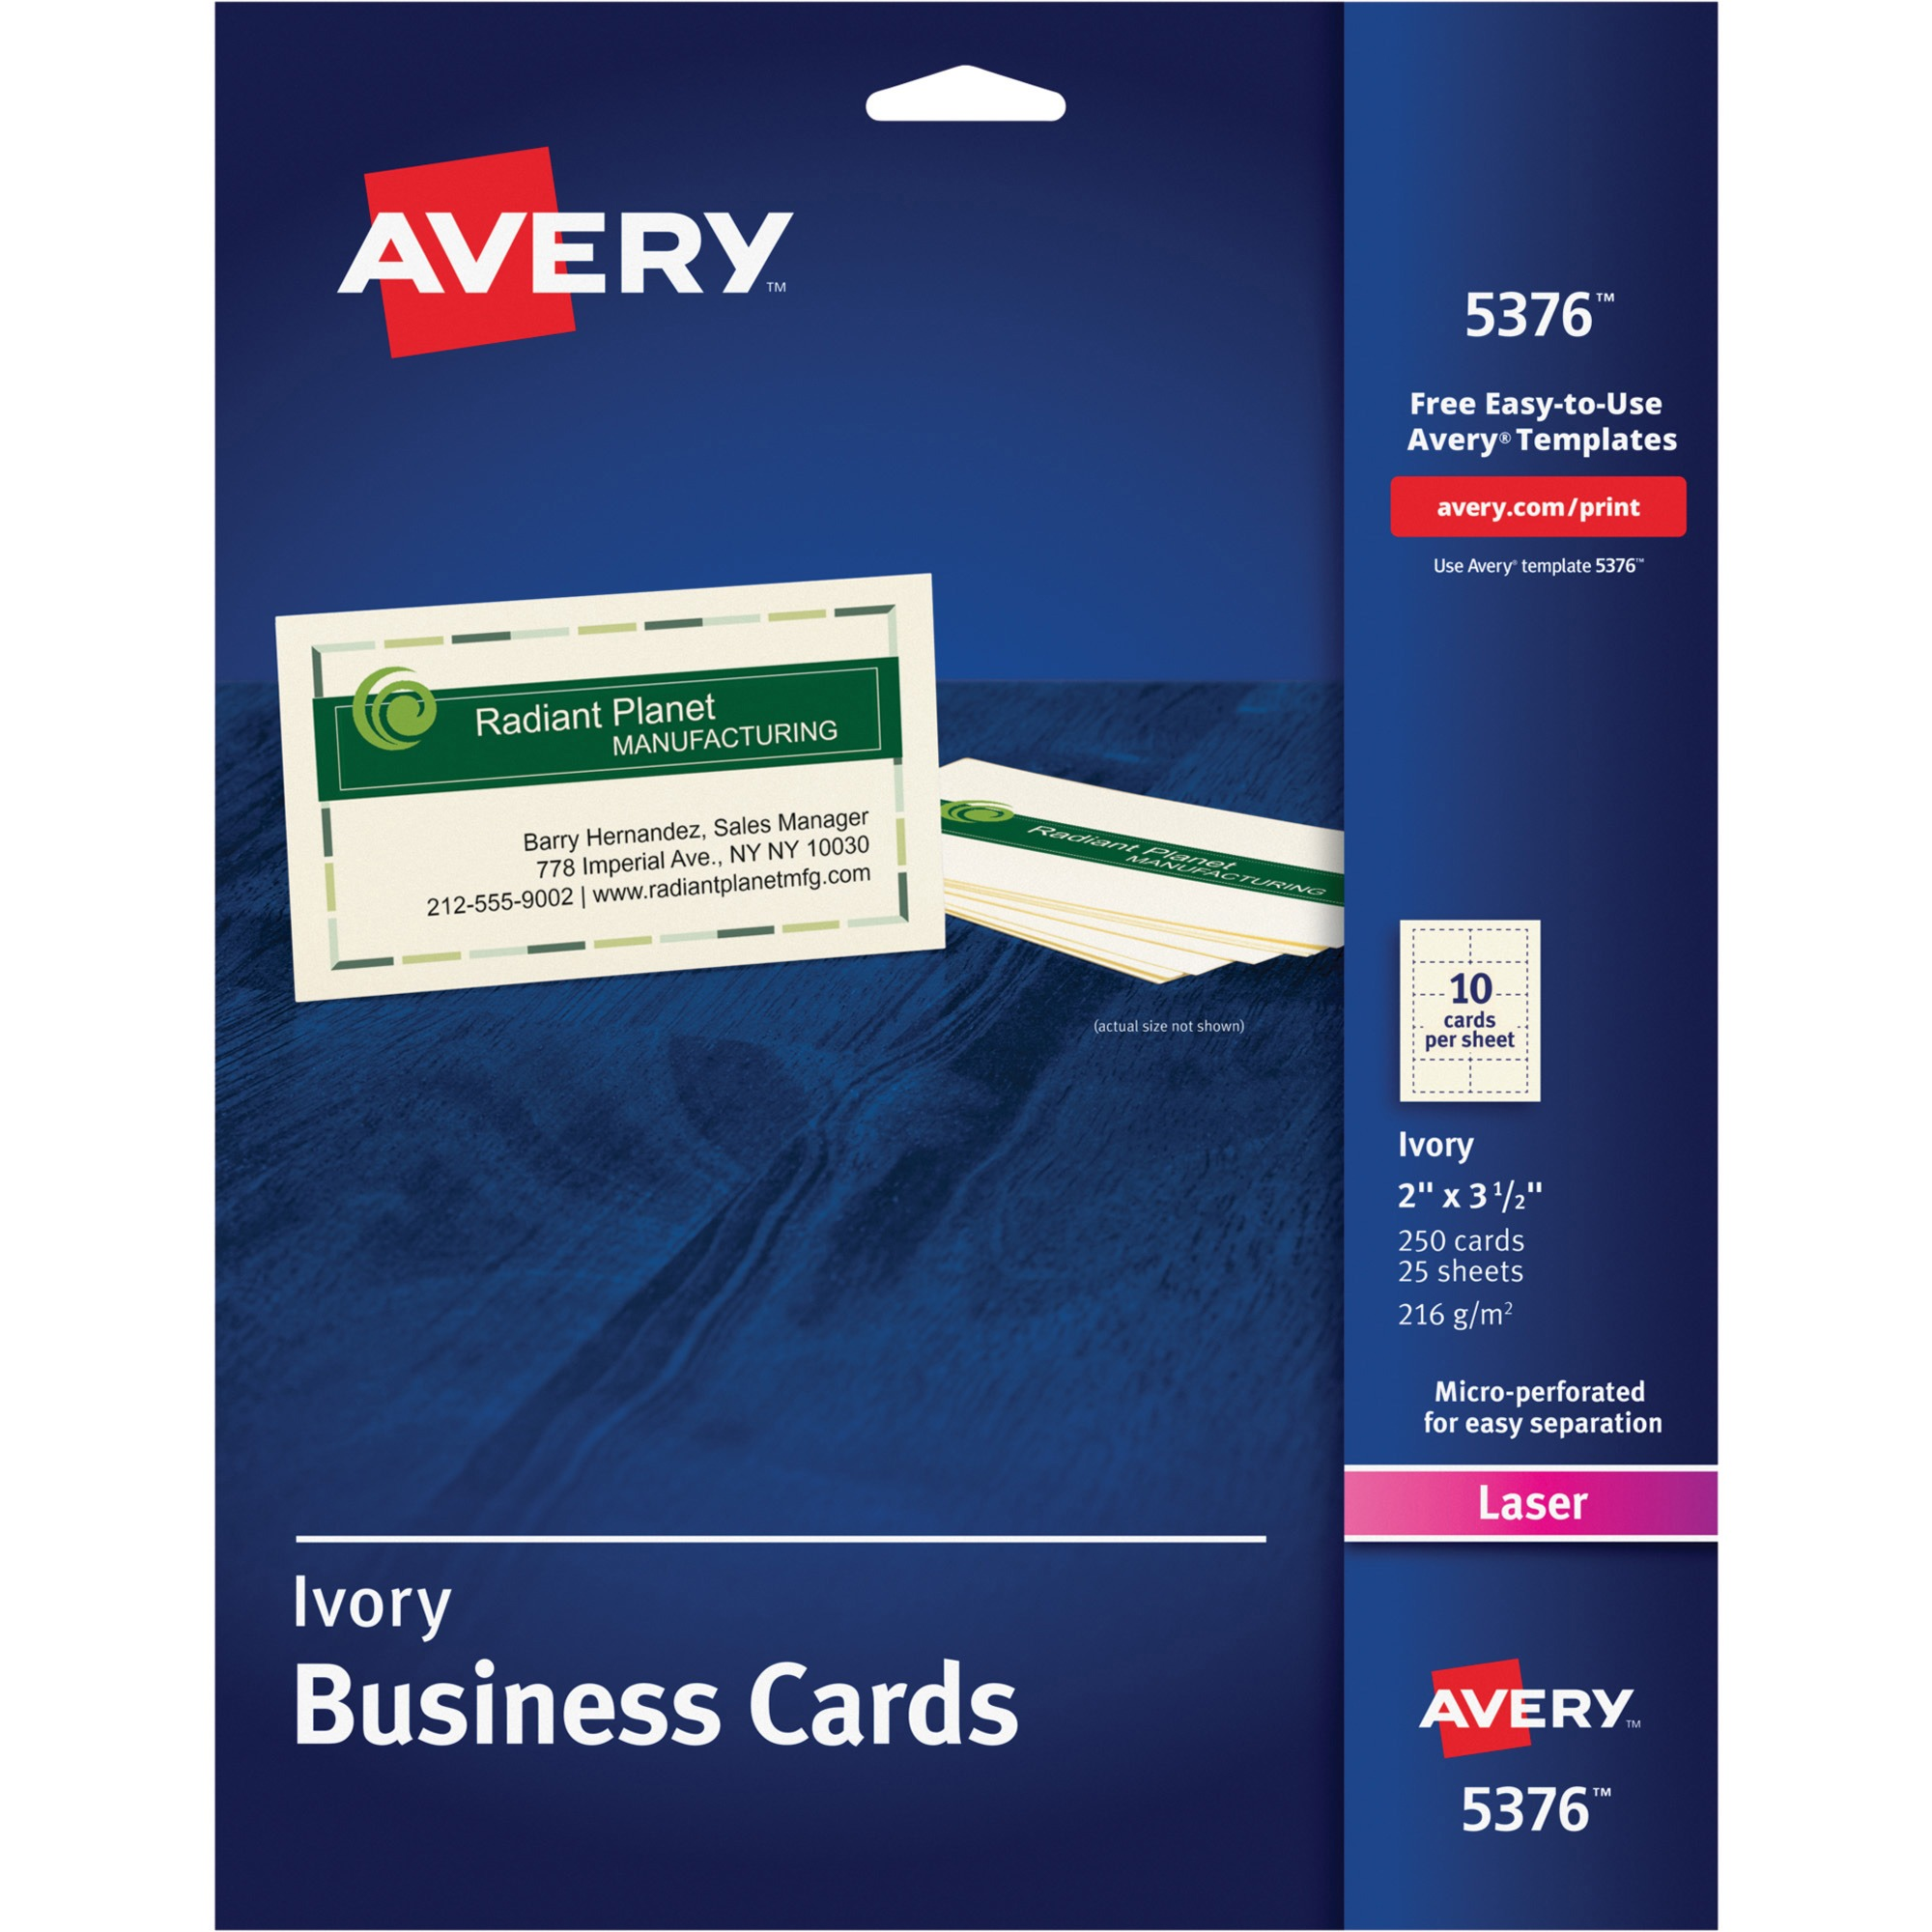 Avery printable microperf business cards laser 2 x 3 12 ivory avery printable microperf business cards laser 2 x 3 12 ivory uncoated 250pack walmart magicingreecefo Gallery